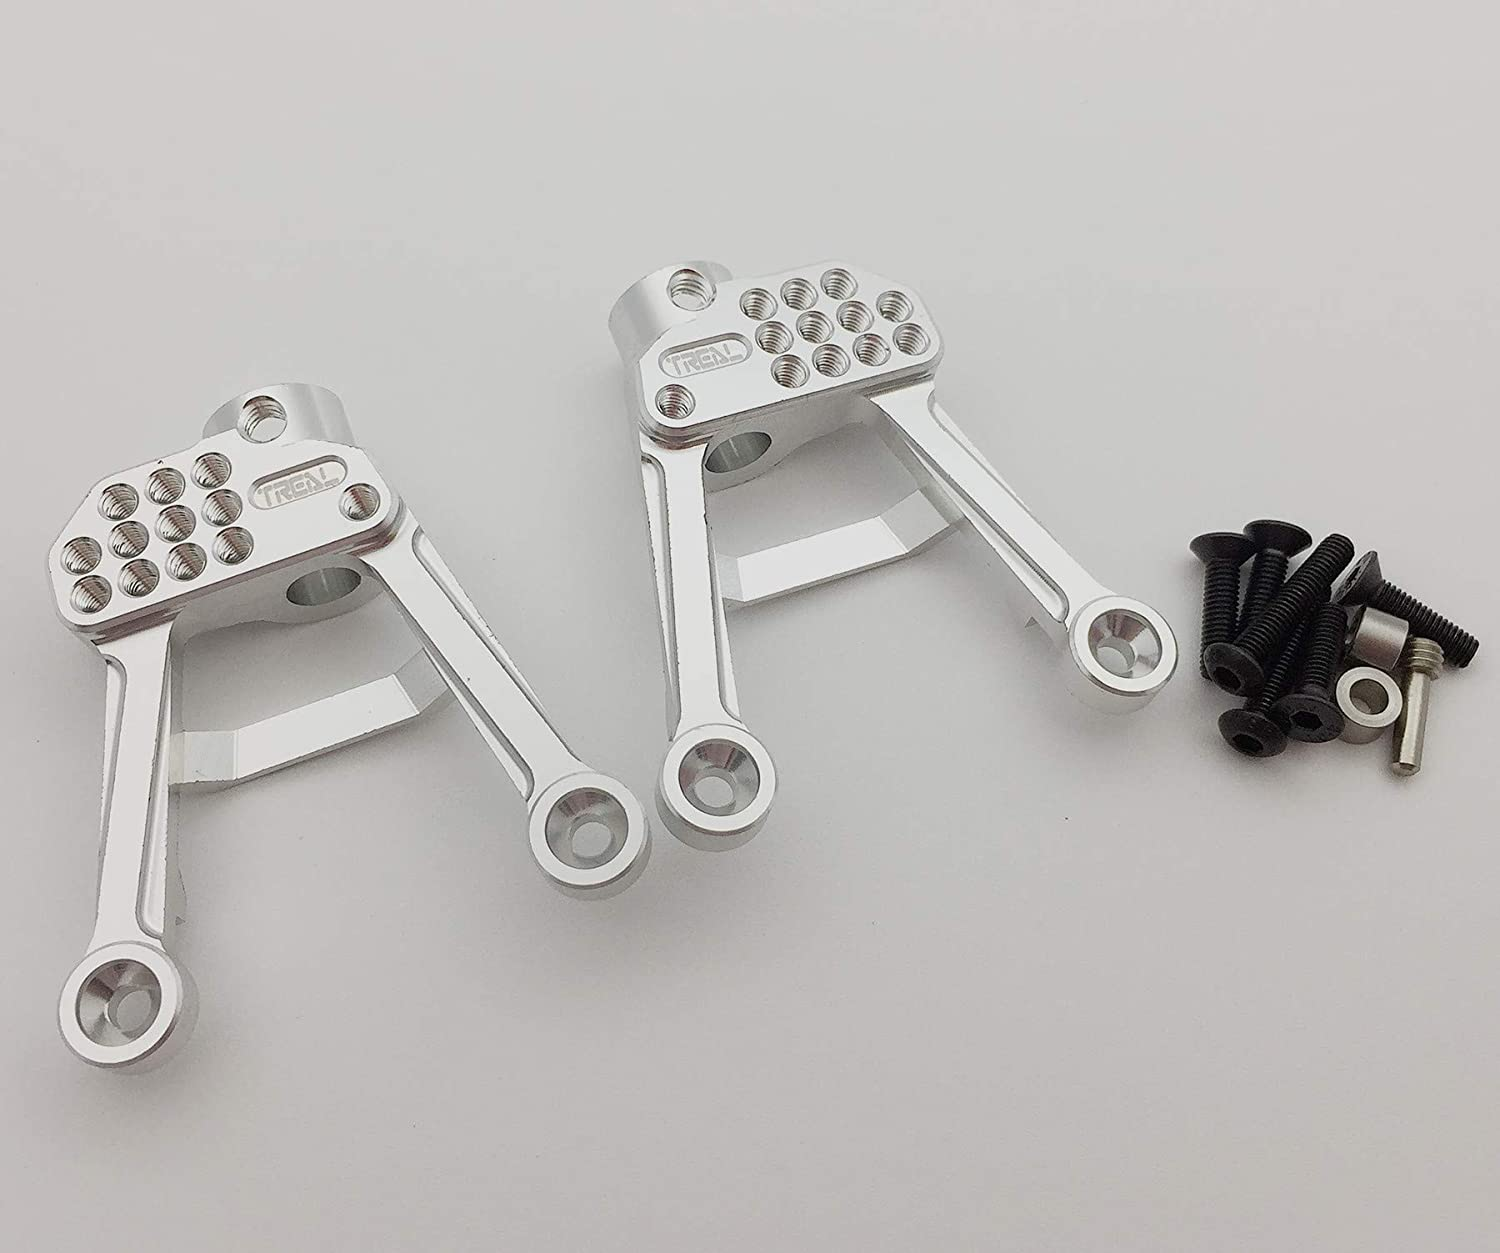 Treal Alloy Rear Shock Tower for Axial 1/10 SCX10 II (Silver)